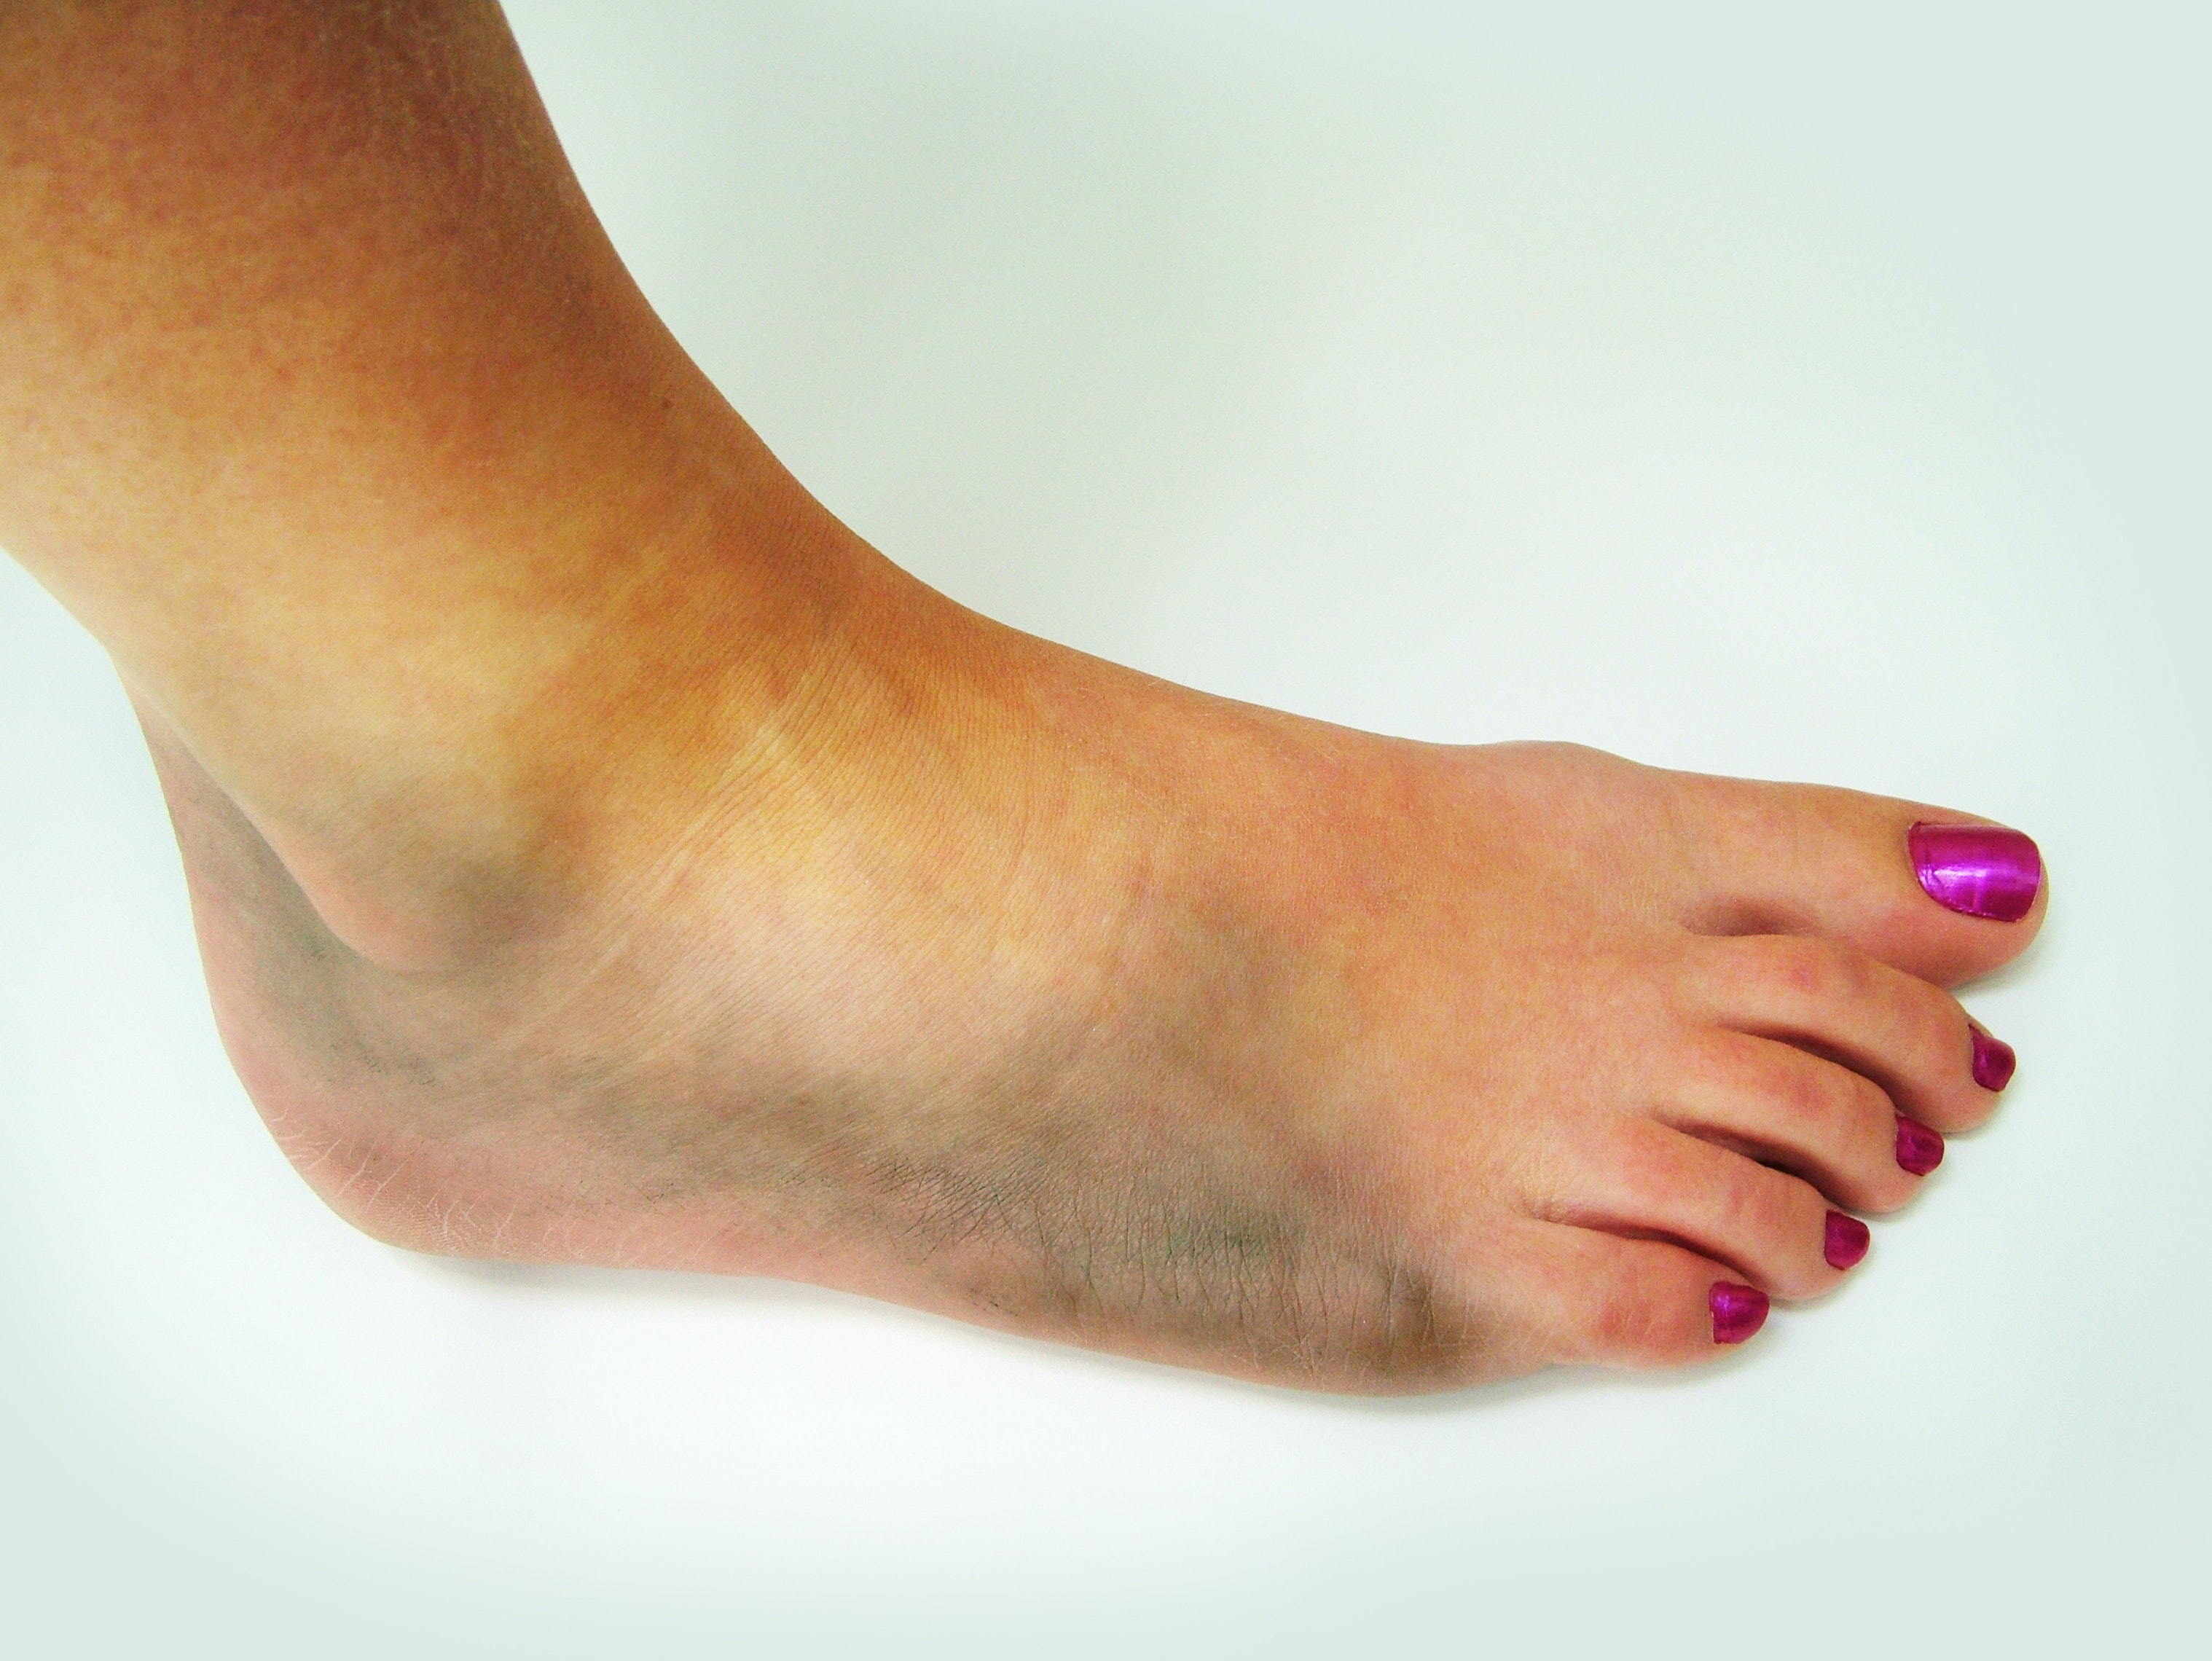 An image depicting a person suffering from foot bruise symptoms